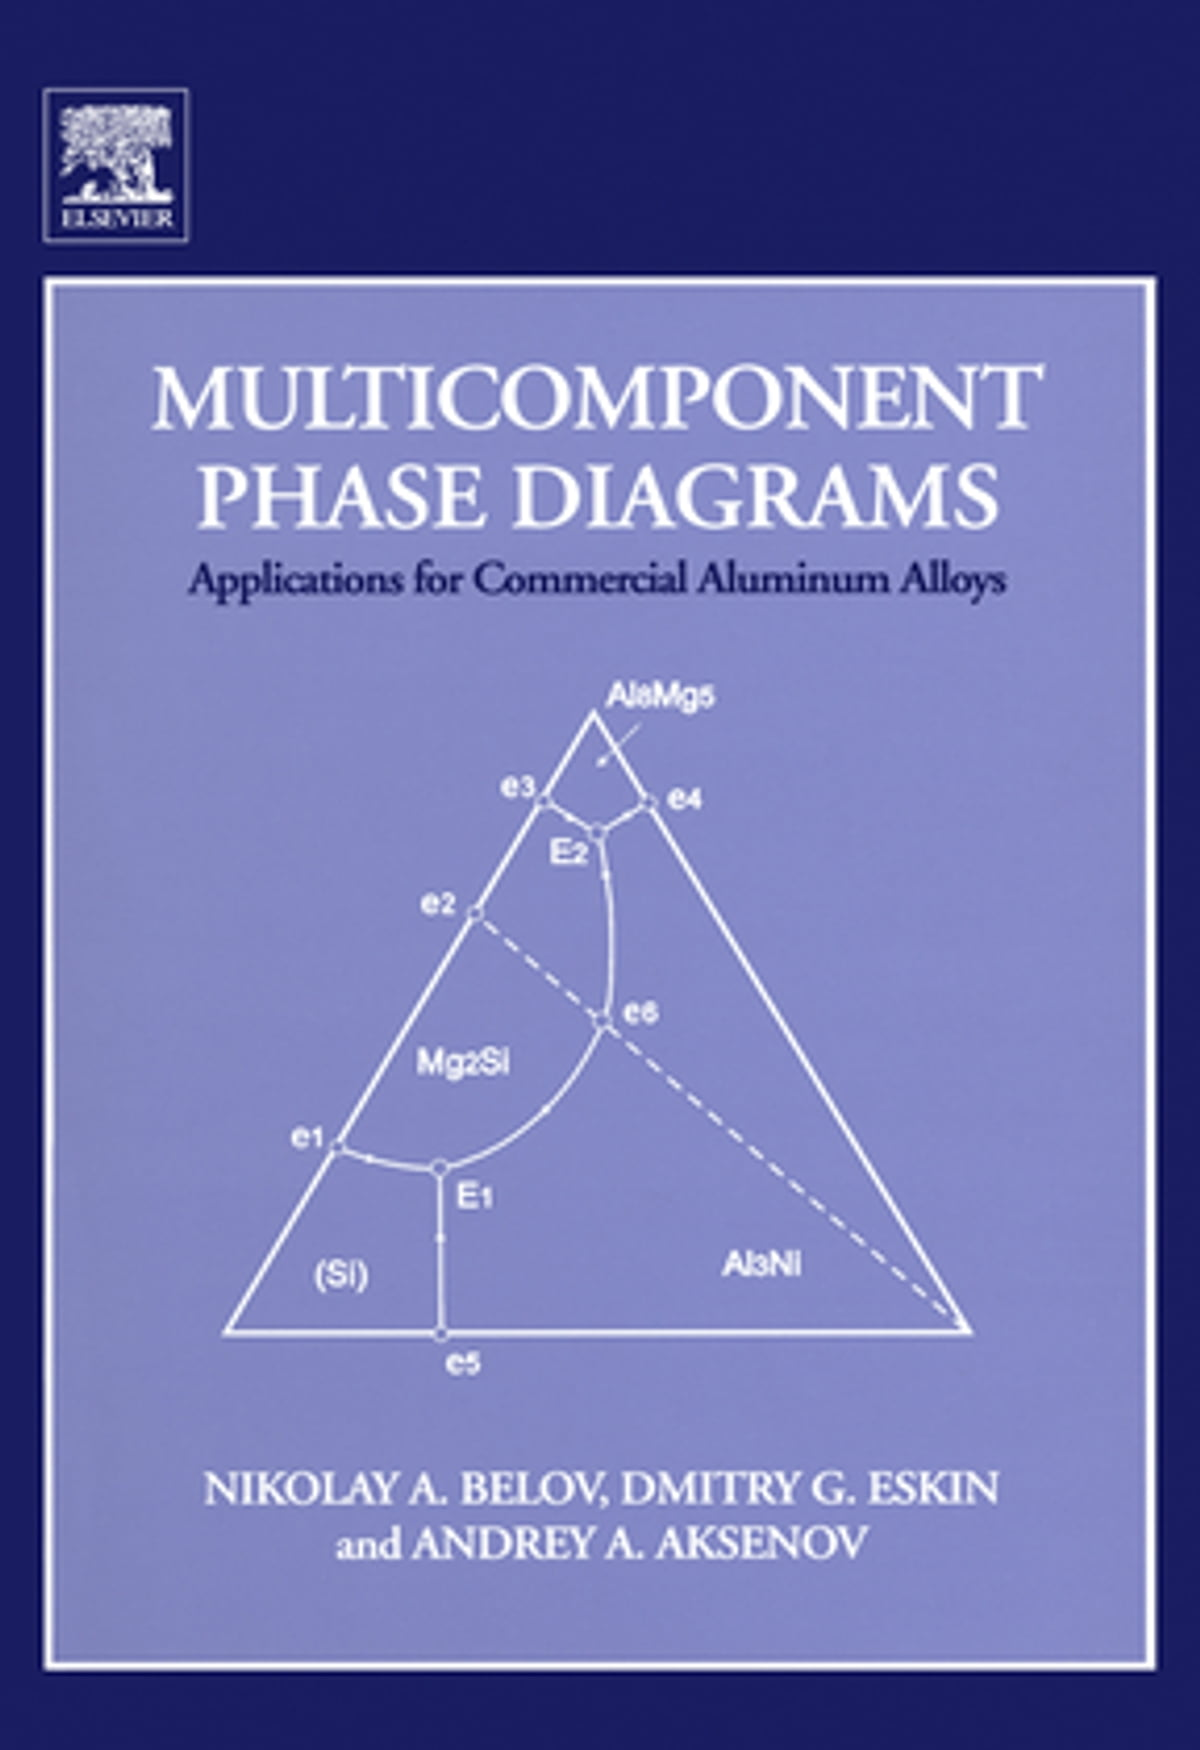 Multicomponent Phase Diagrams  Applications For Commercial Aluminum Alloys Ebook By Nikolay A